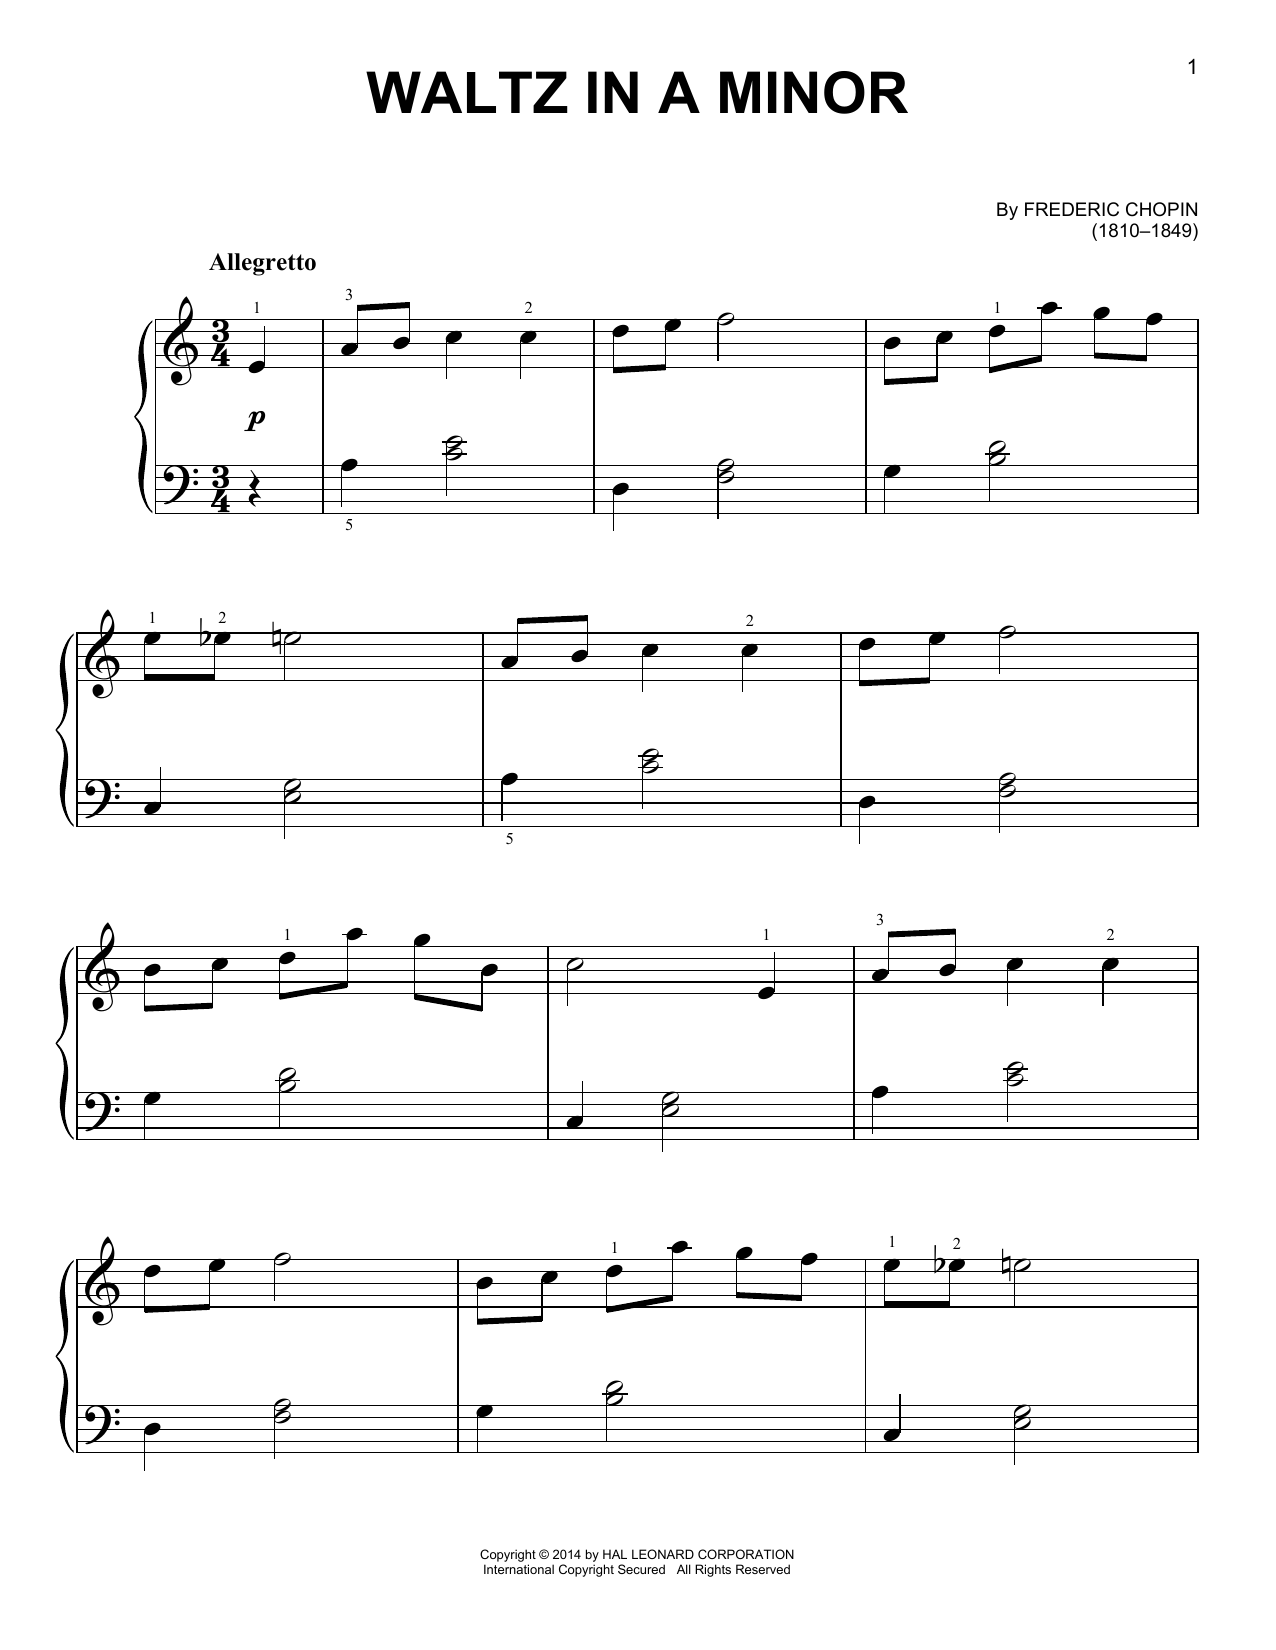 Frederic Chopin Waltz In A Minor Sheet Music Notes Chords Download Printable Easy Piano Sku 157733